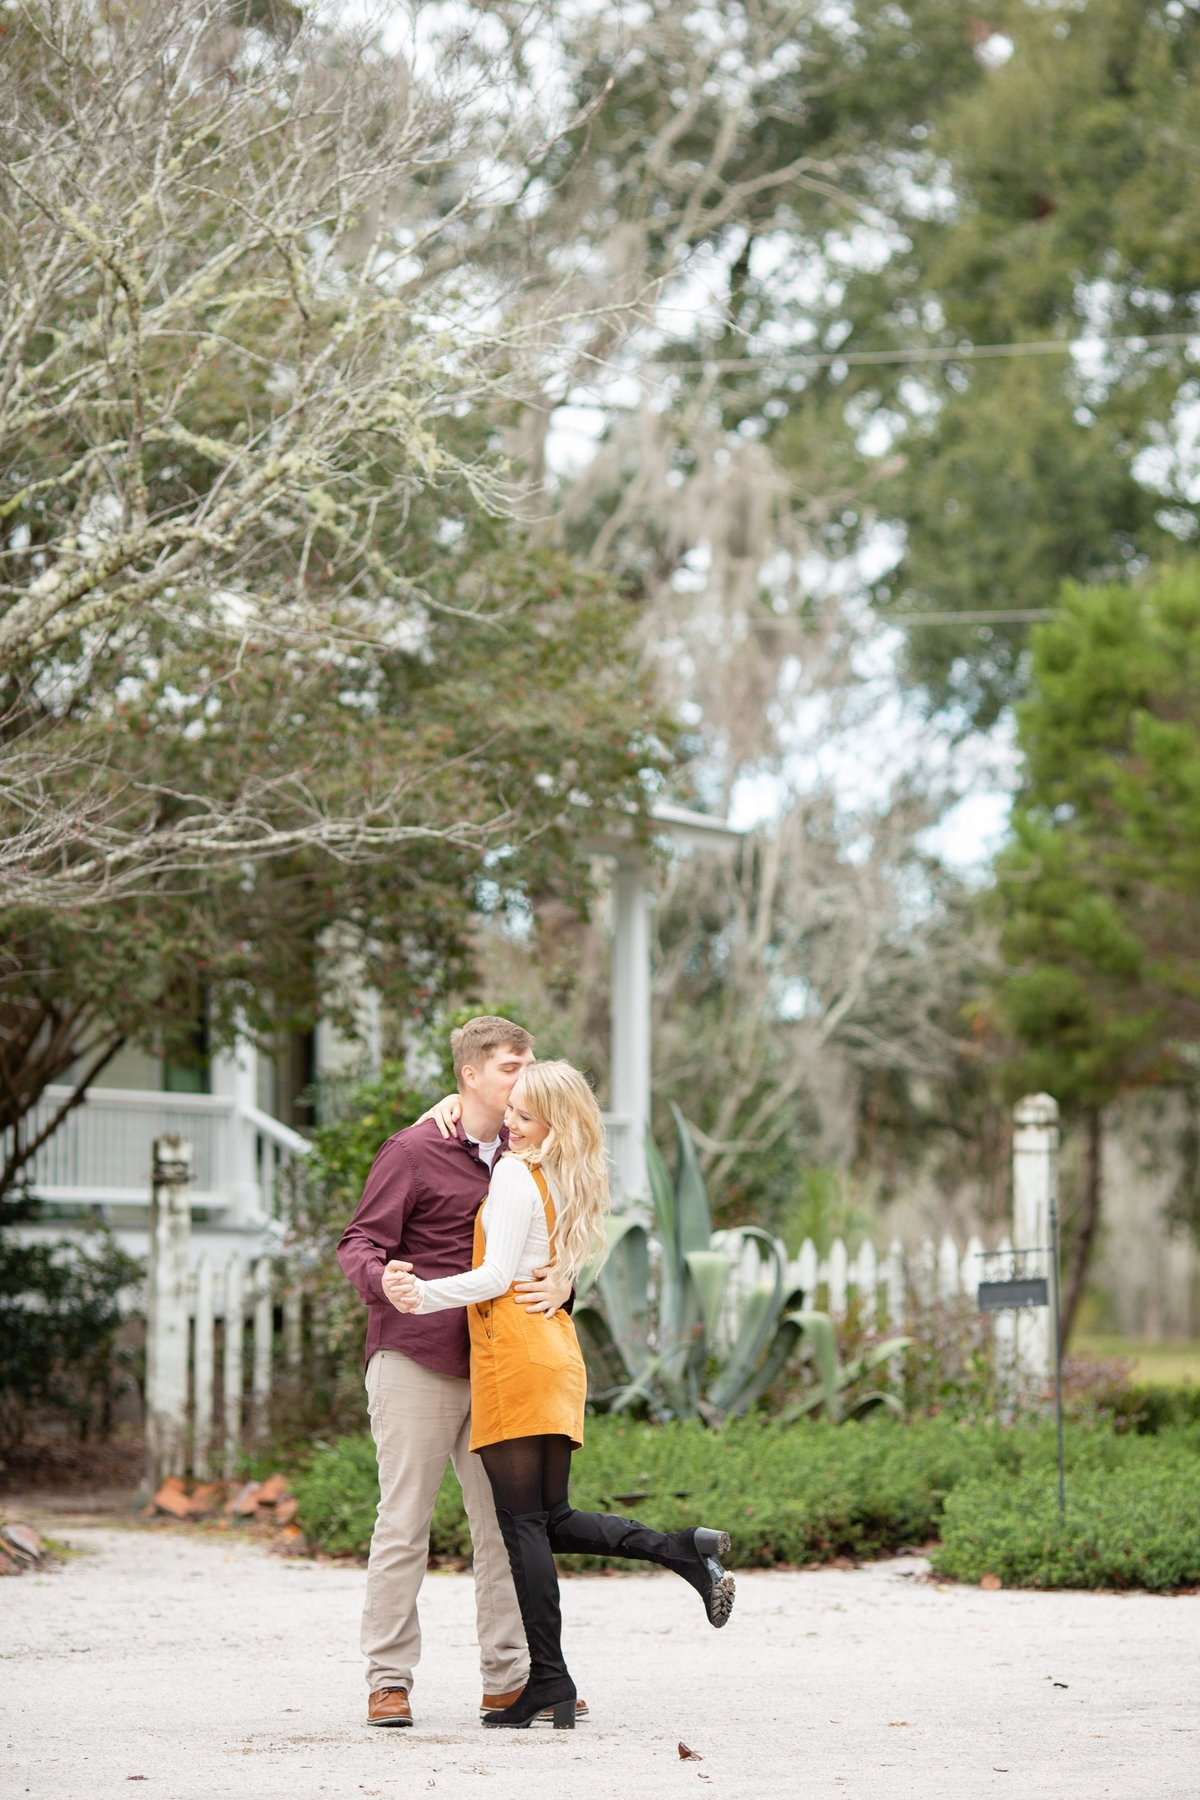 savannah-wedding-photographer-glowing-amber-13-4